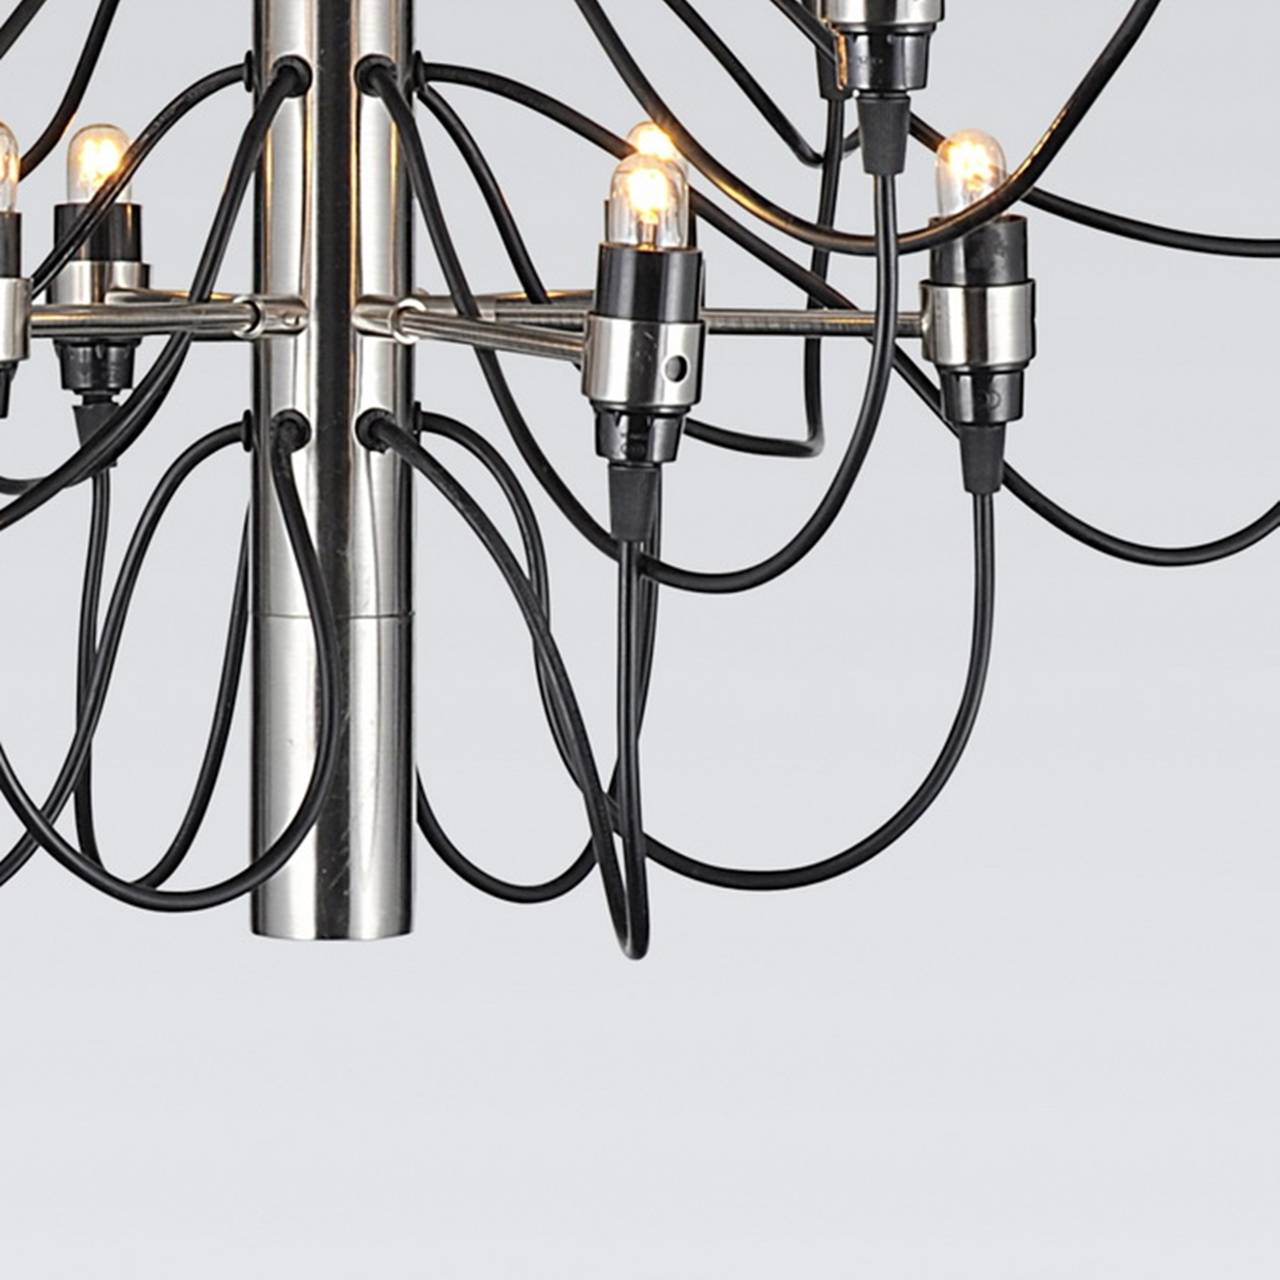 Gino Sarfatti Light Fixture For Flos For Sale At 1stdibs